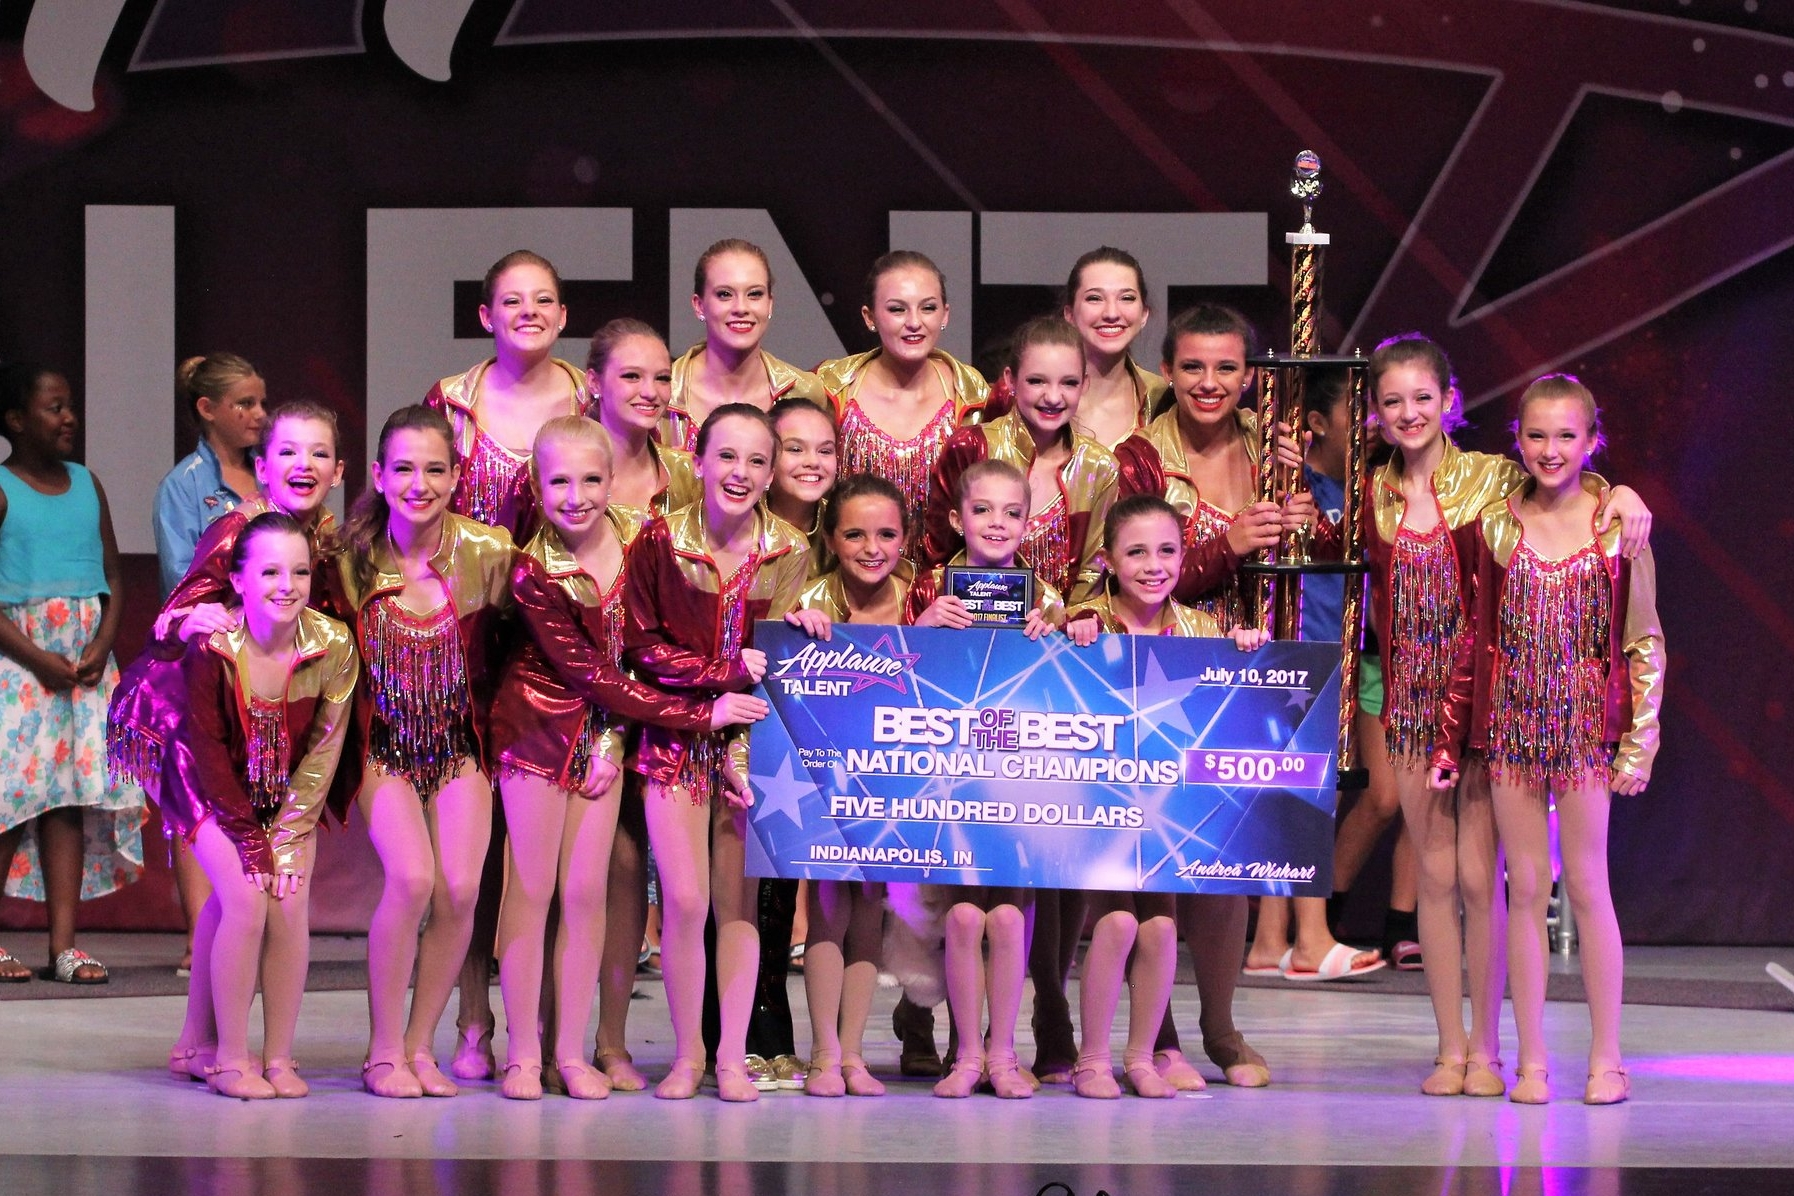 2017 Best of the Best National Champions!! Applause Talent Nationals Indianapolis, Indiana